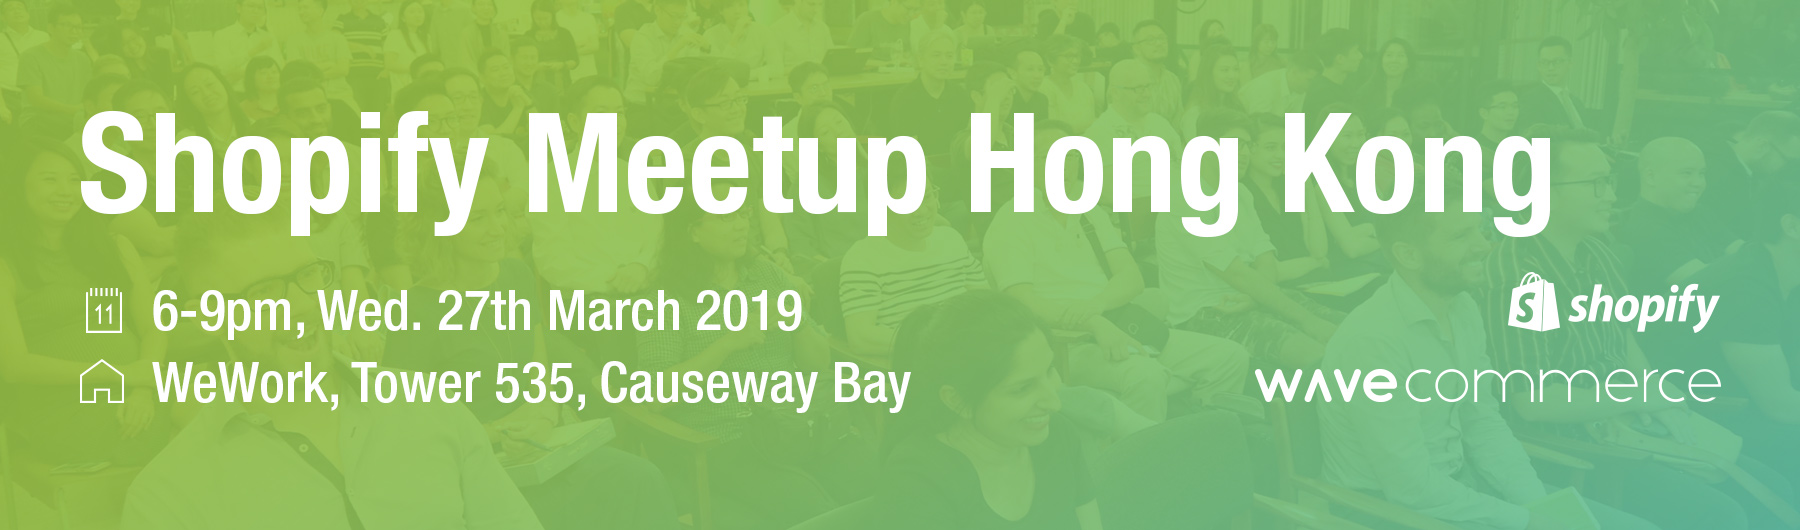 Shopify Meetup Hong Kong Spring 2019